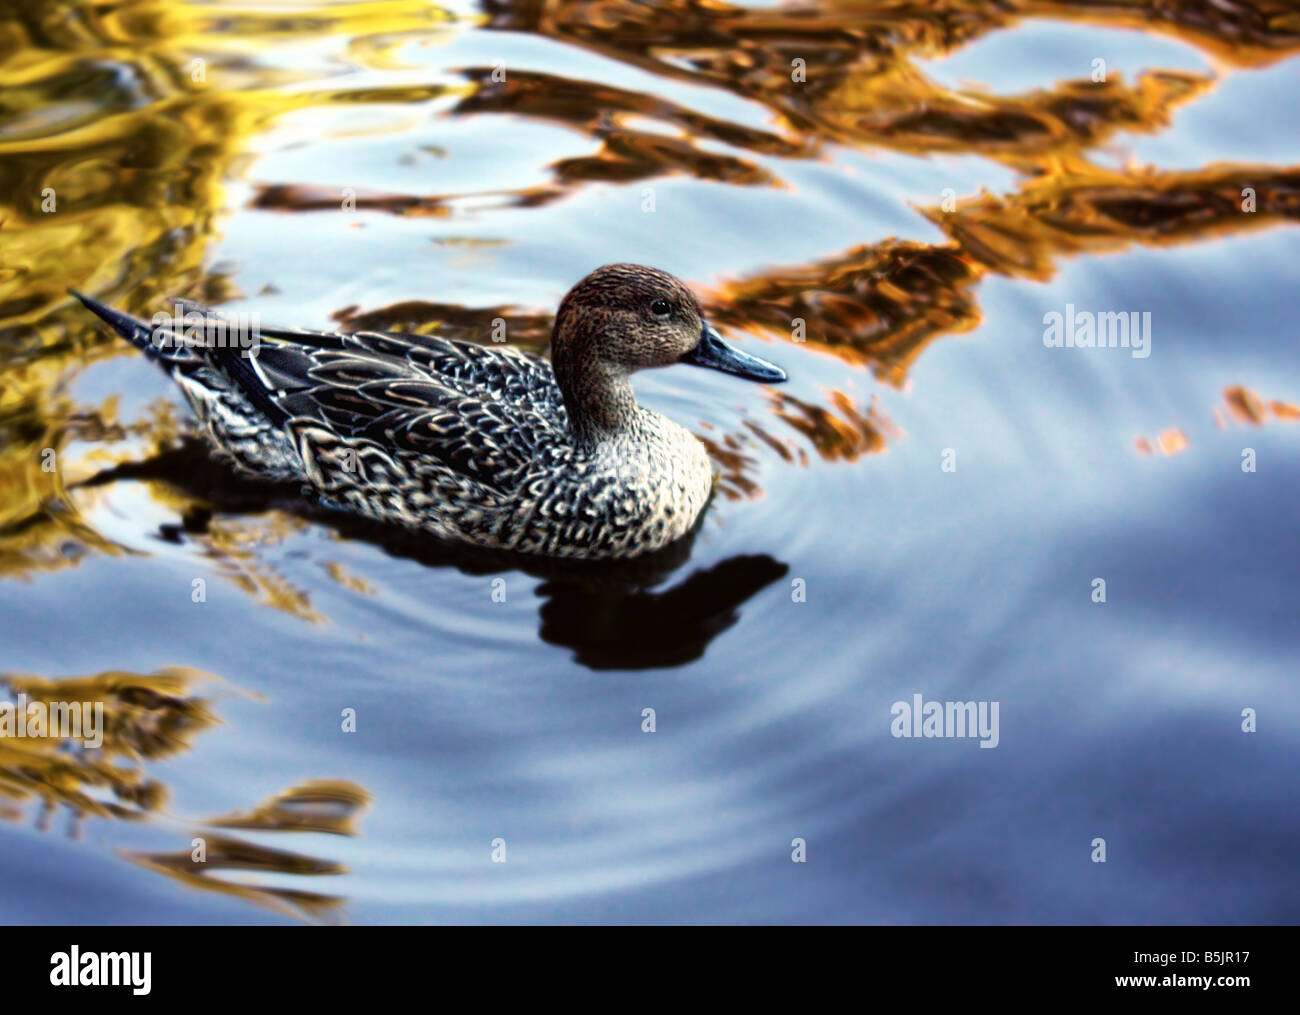 USA A duck swims across a reflection pond Duck is the common name for a number of species in the Anatidae family - Stock Image